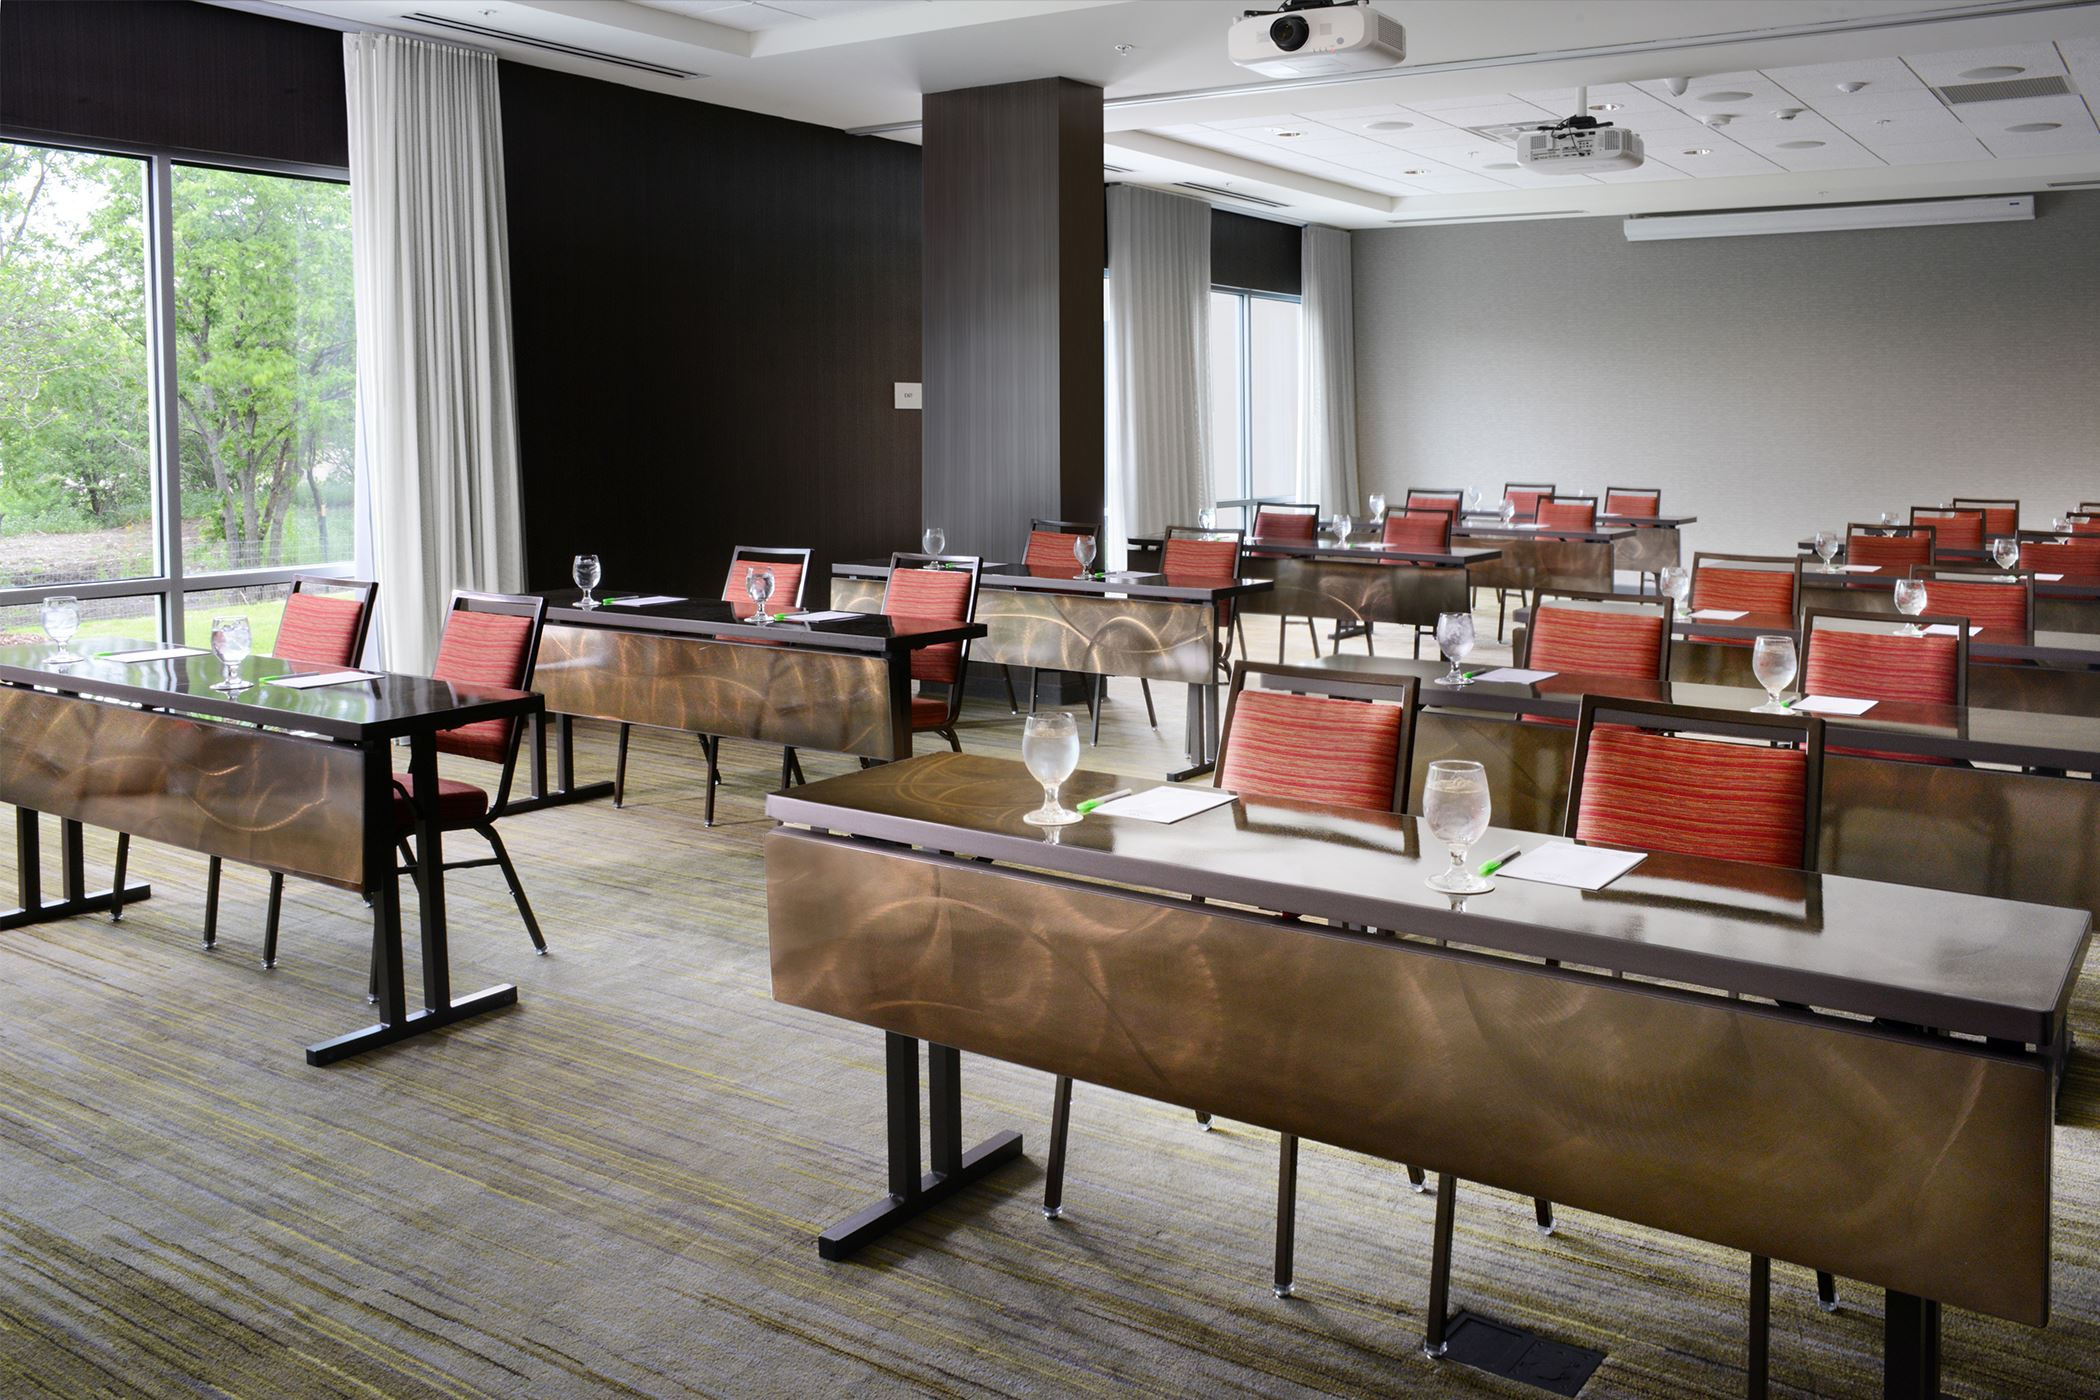 Courtyard by Marriott - meeting room_classroom setup